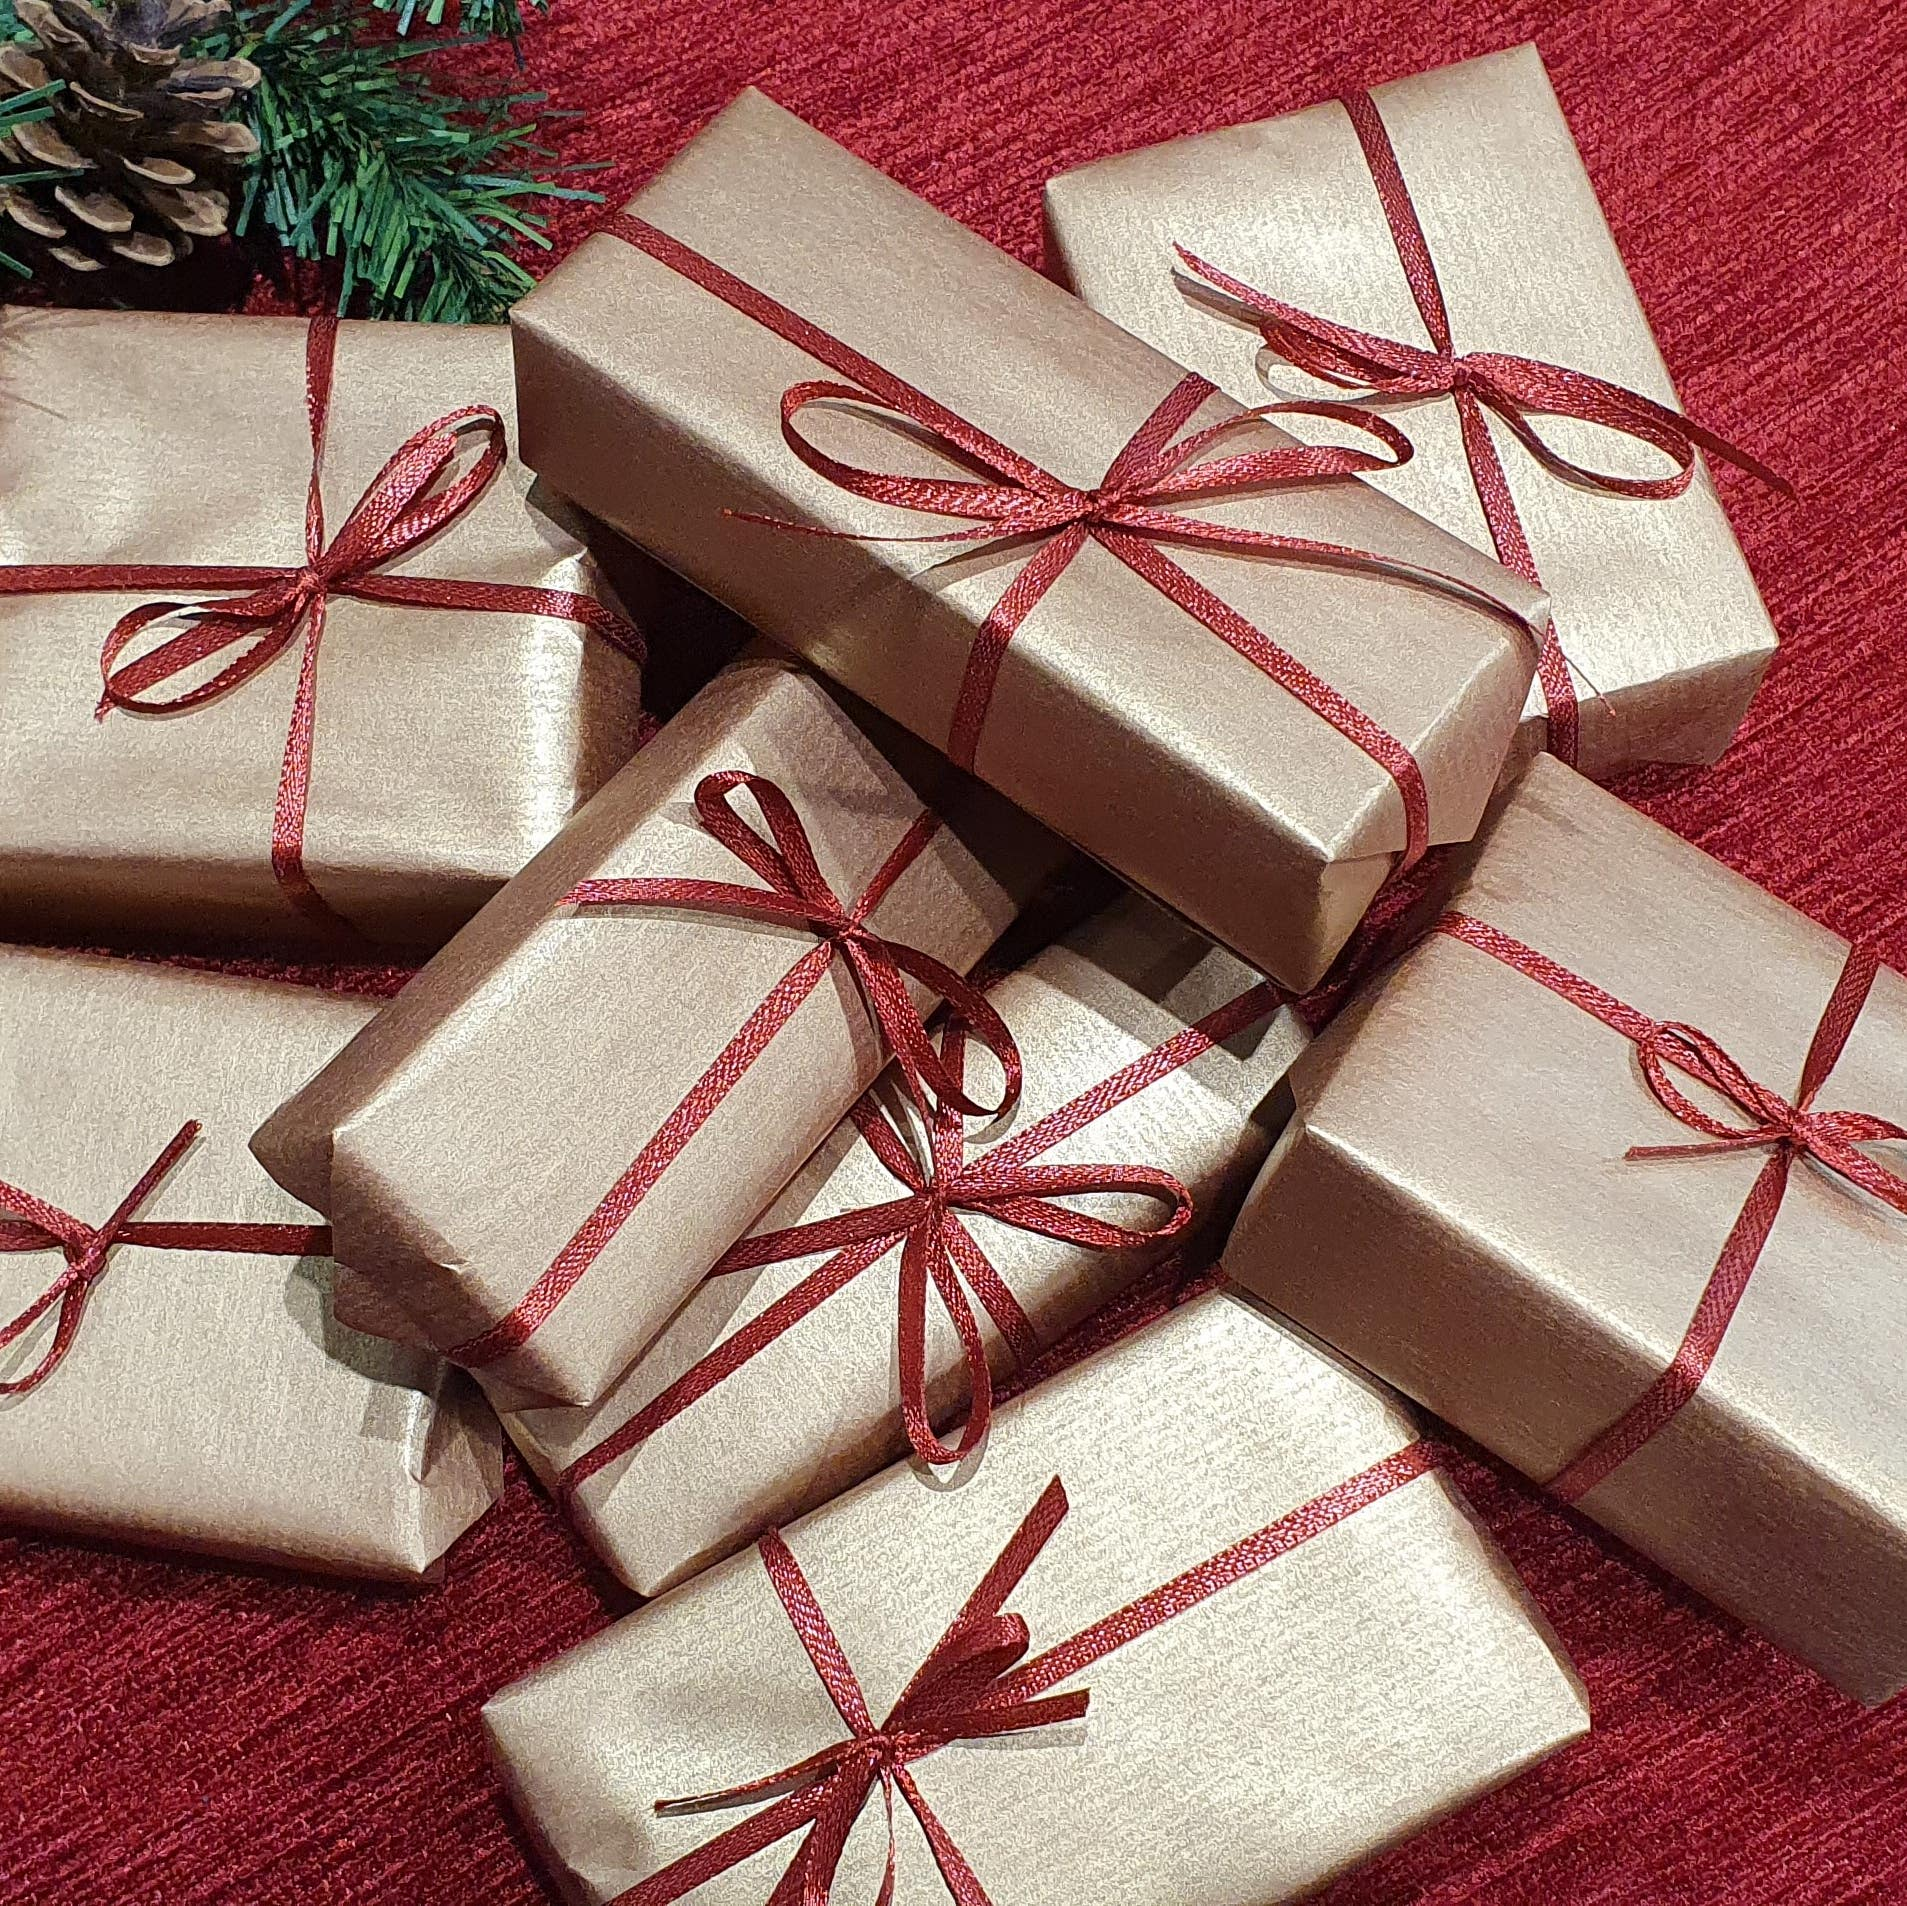 Pile of small wrapped boxes to use and tree decorations and props